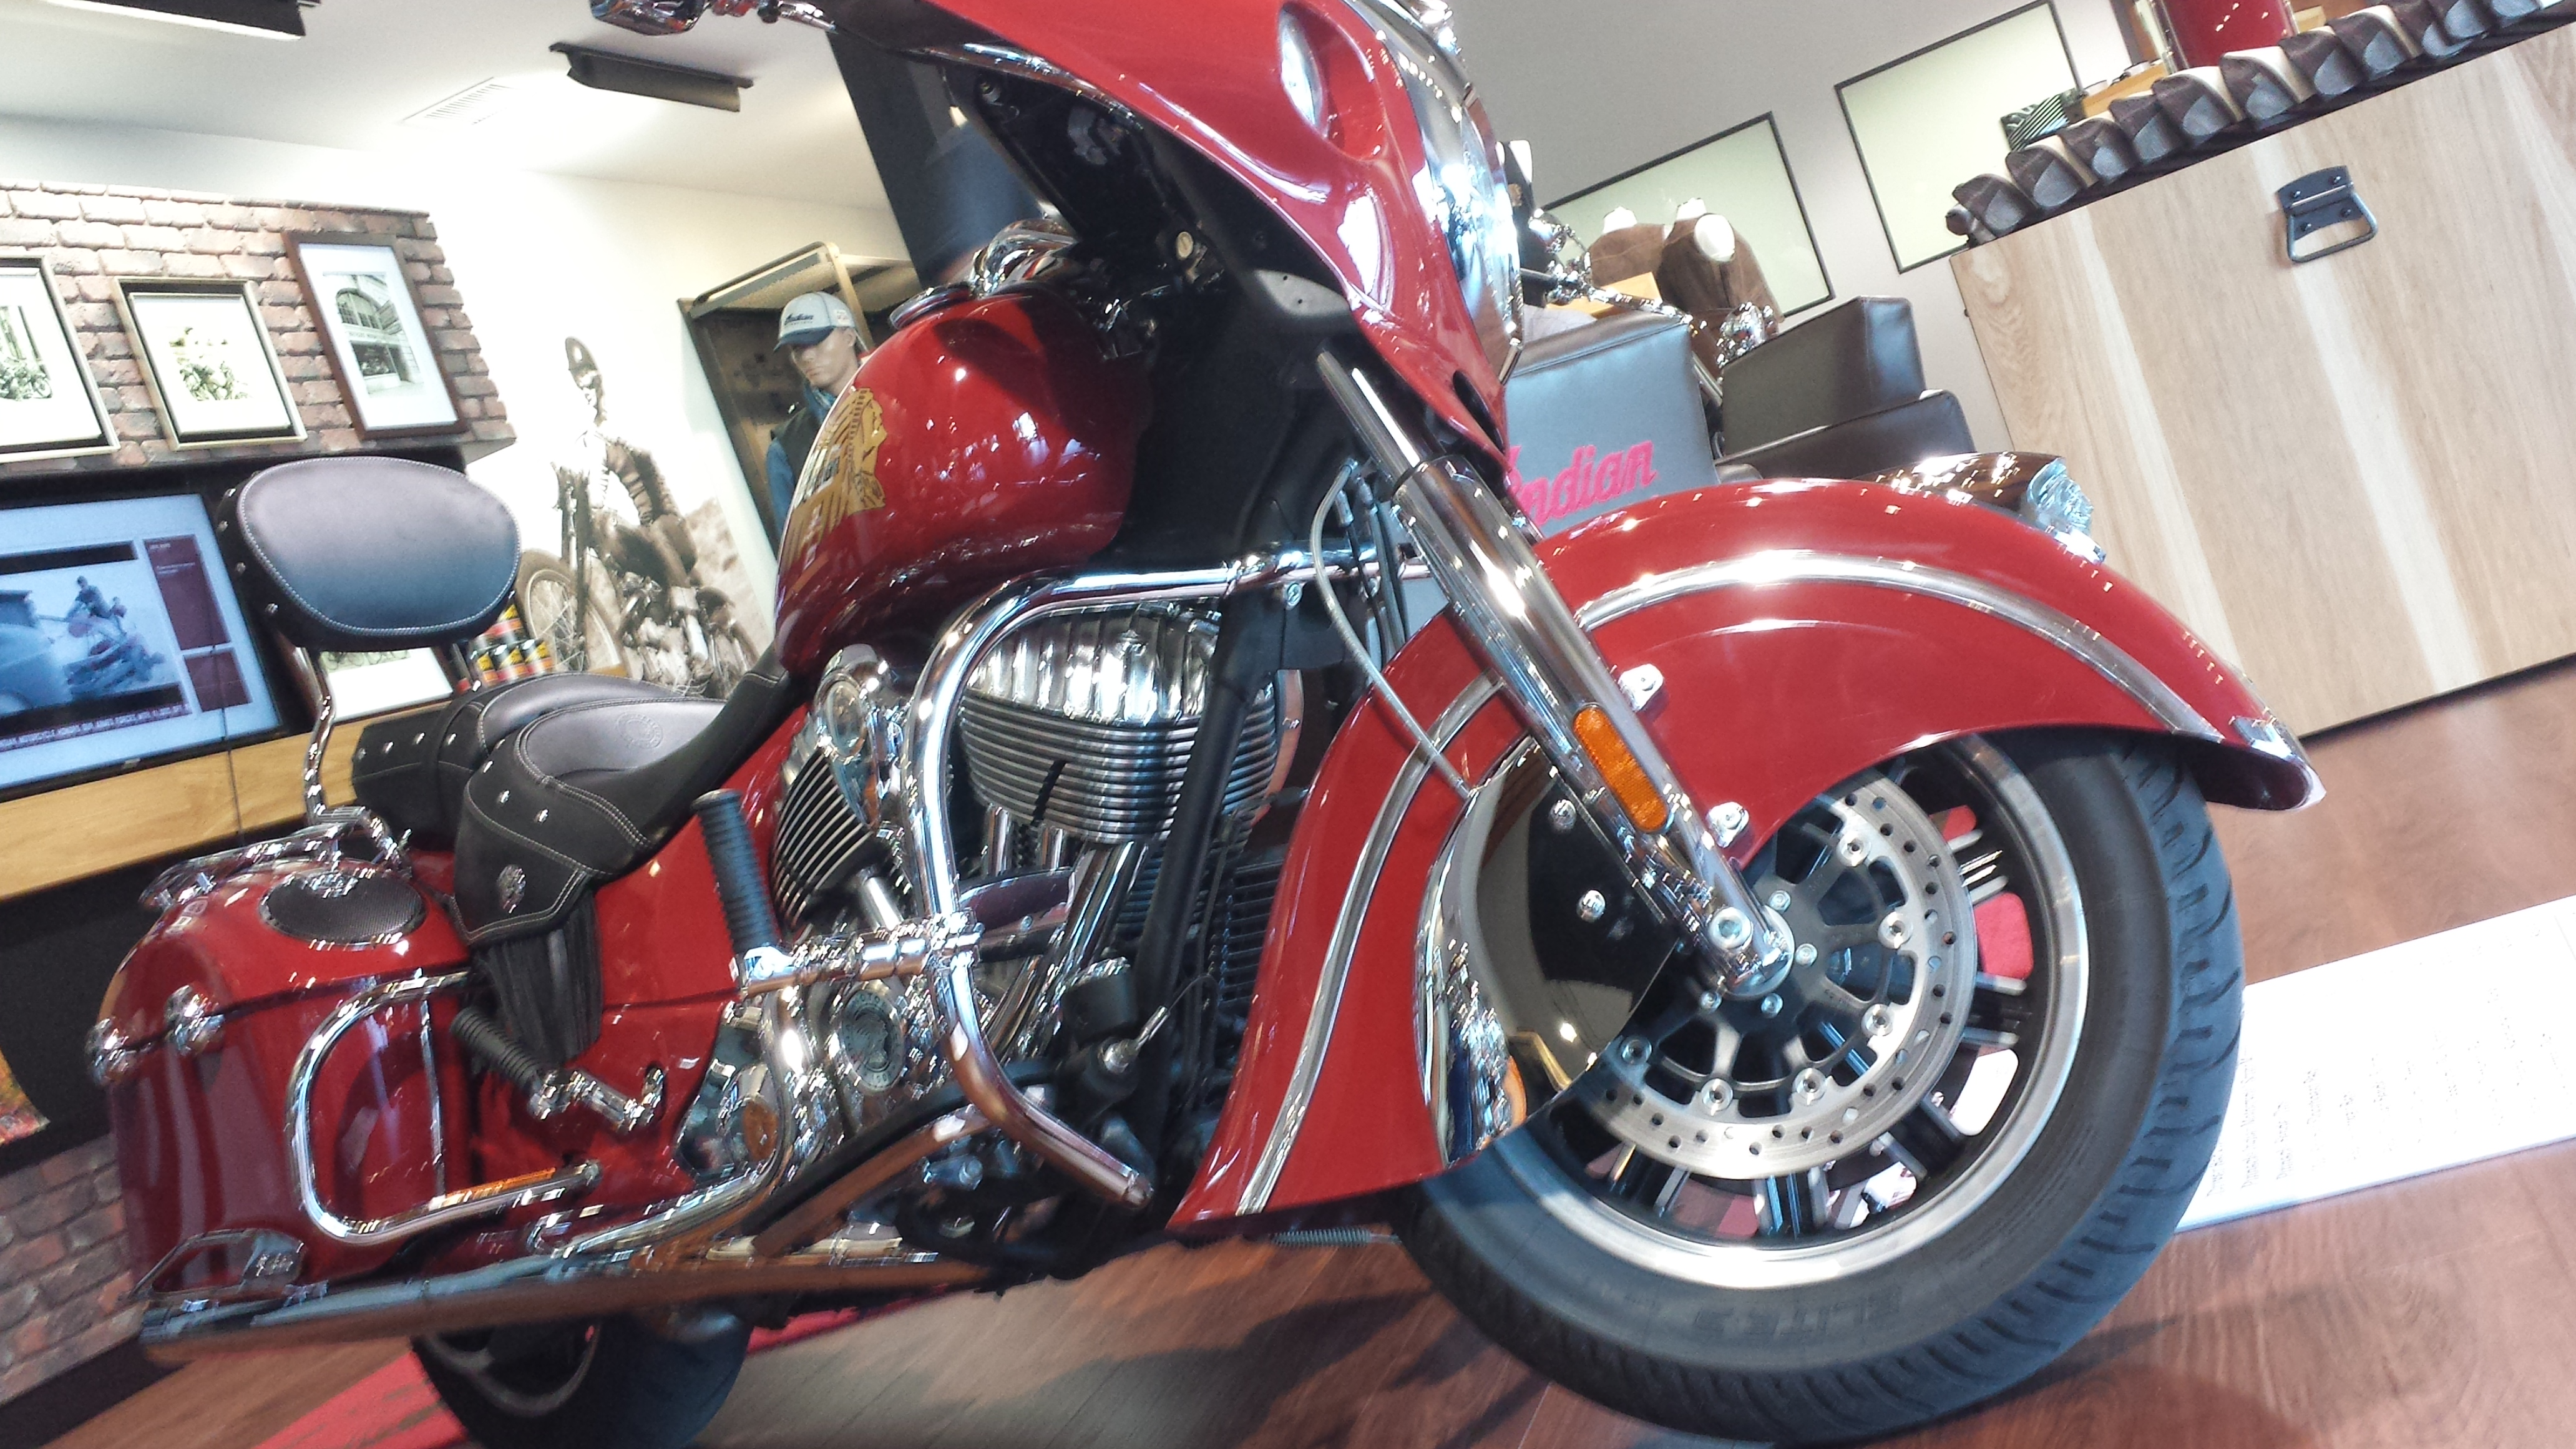 motorcycle indian chieftain accessories apparel displays audio fairing system